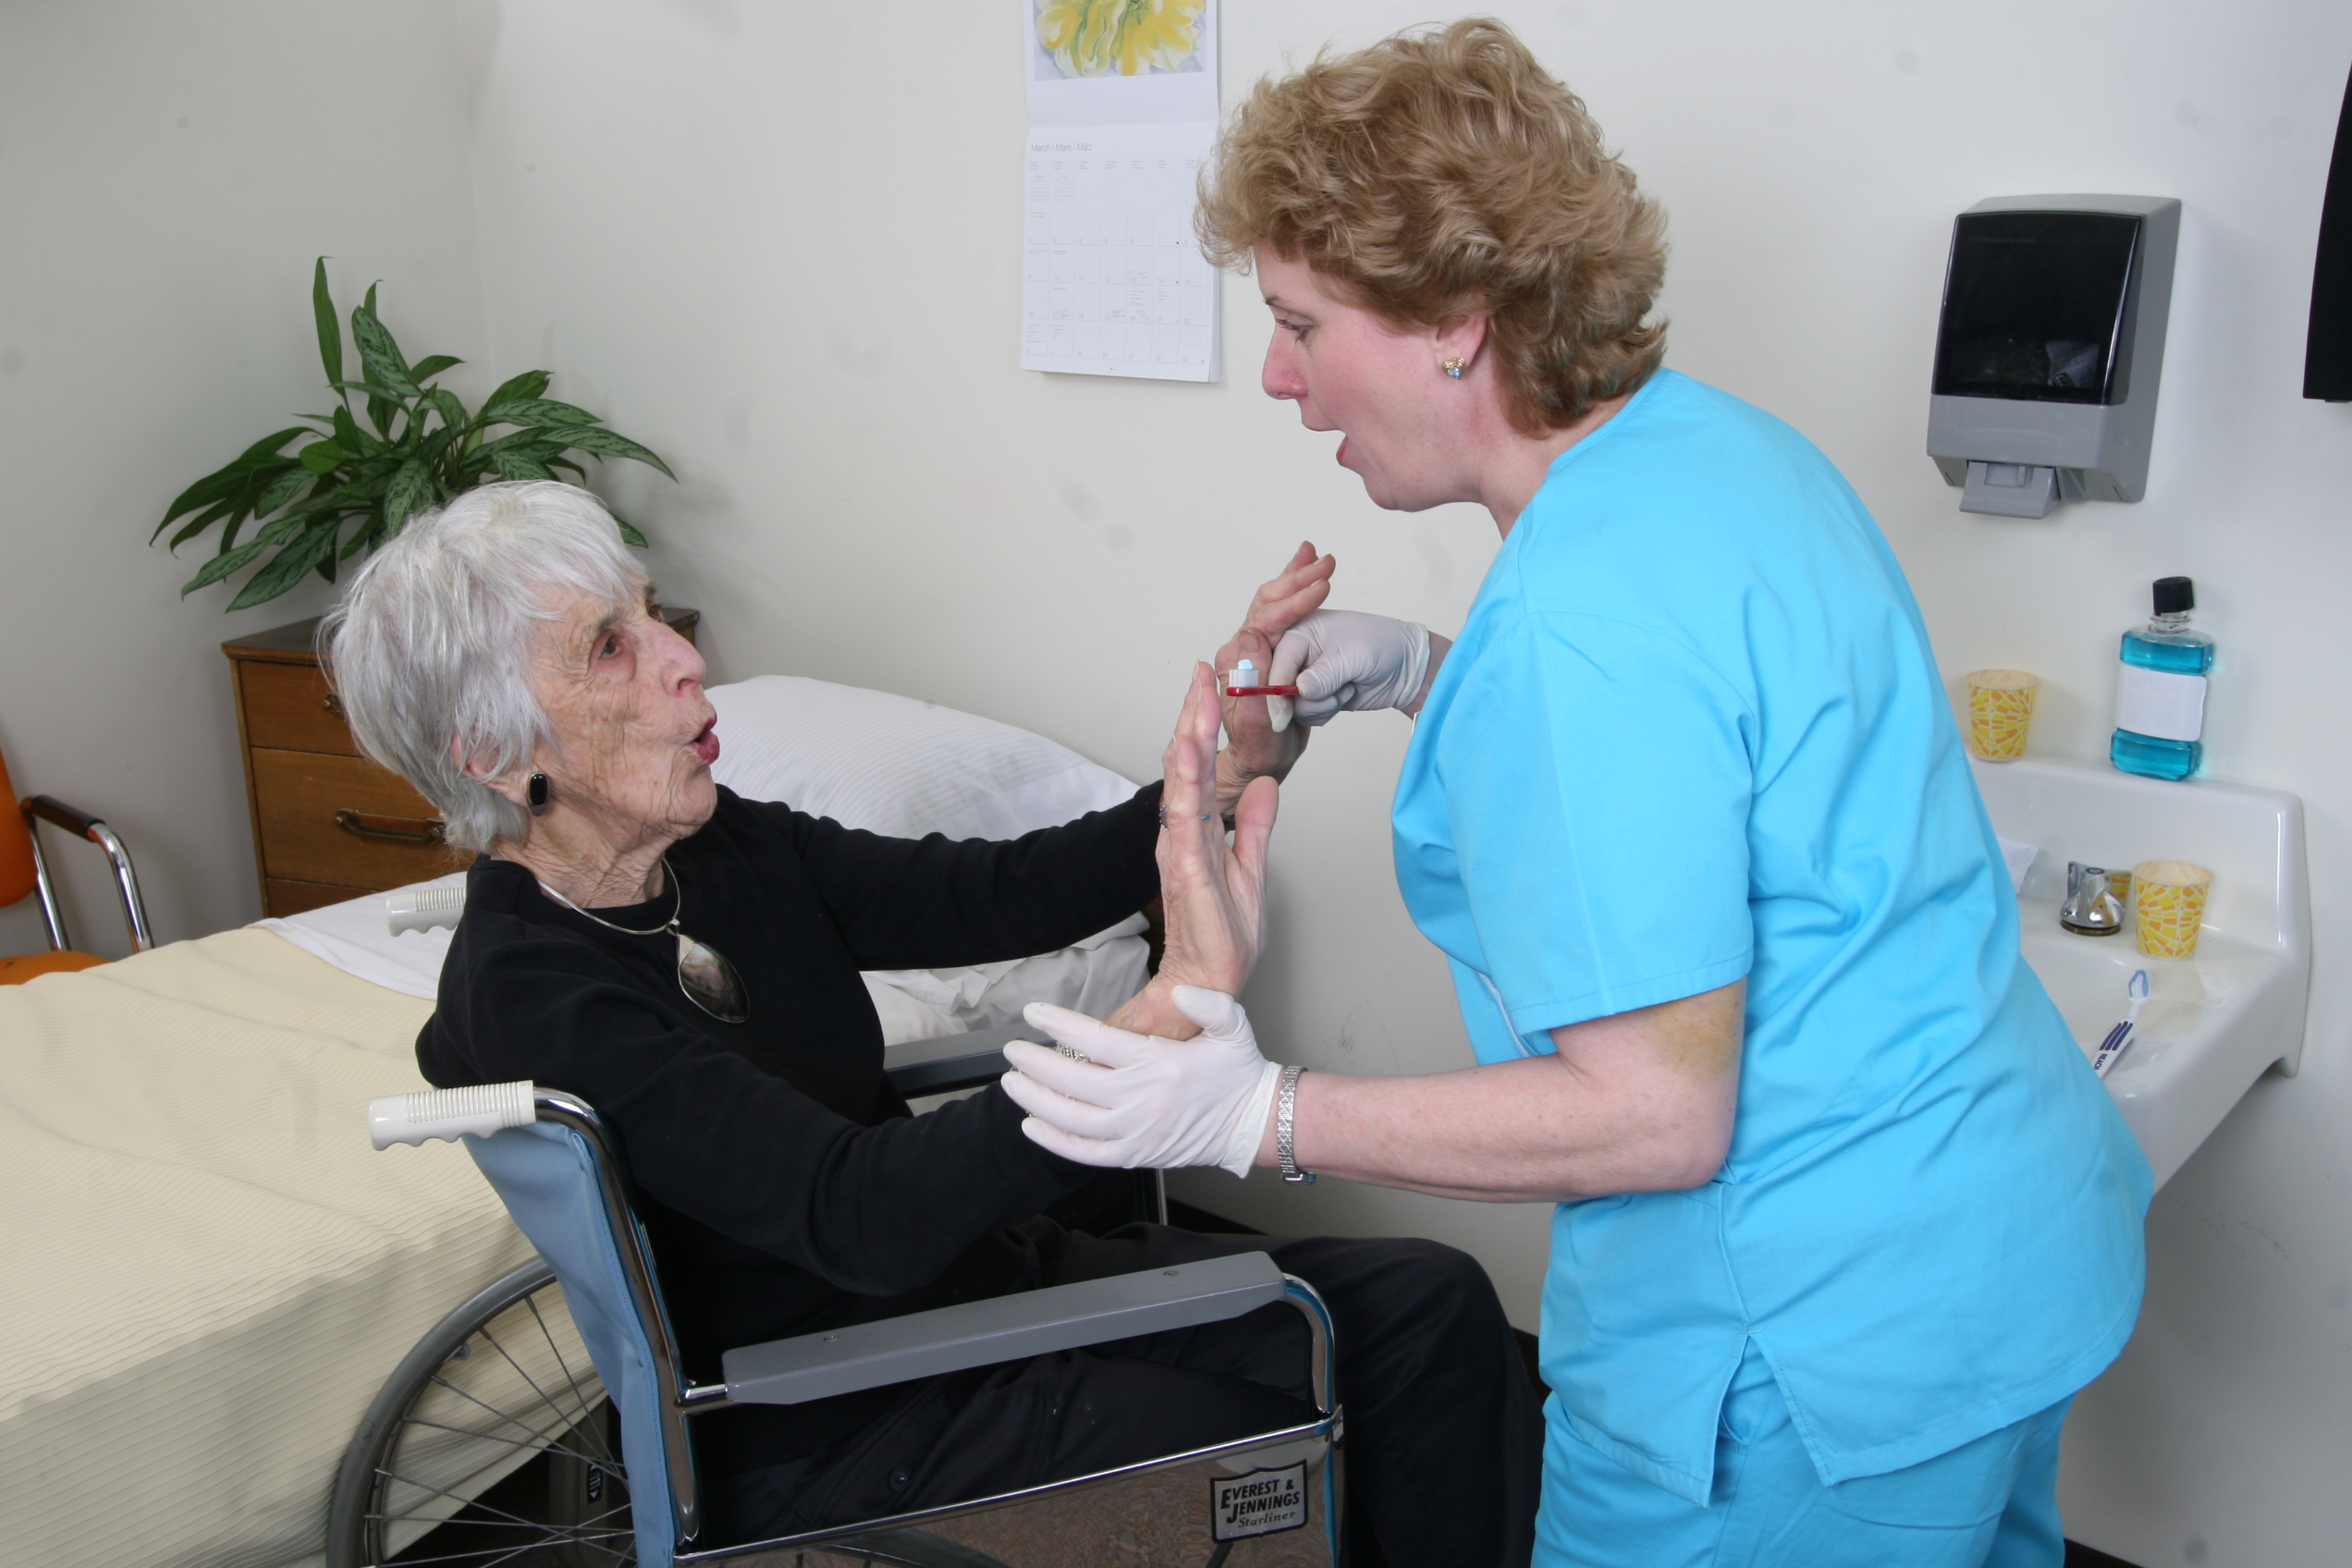 10 Tested Ways to Avoid Care Refusals